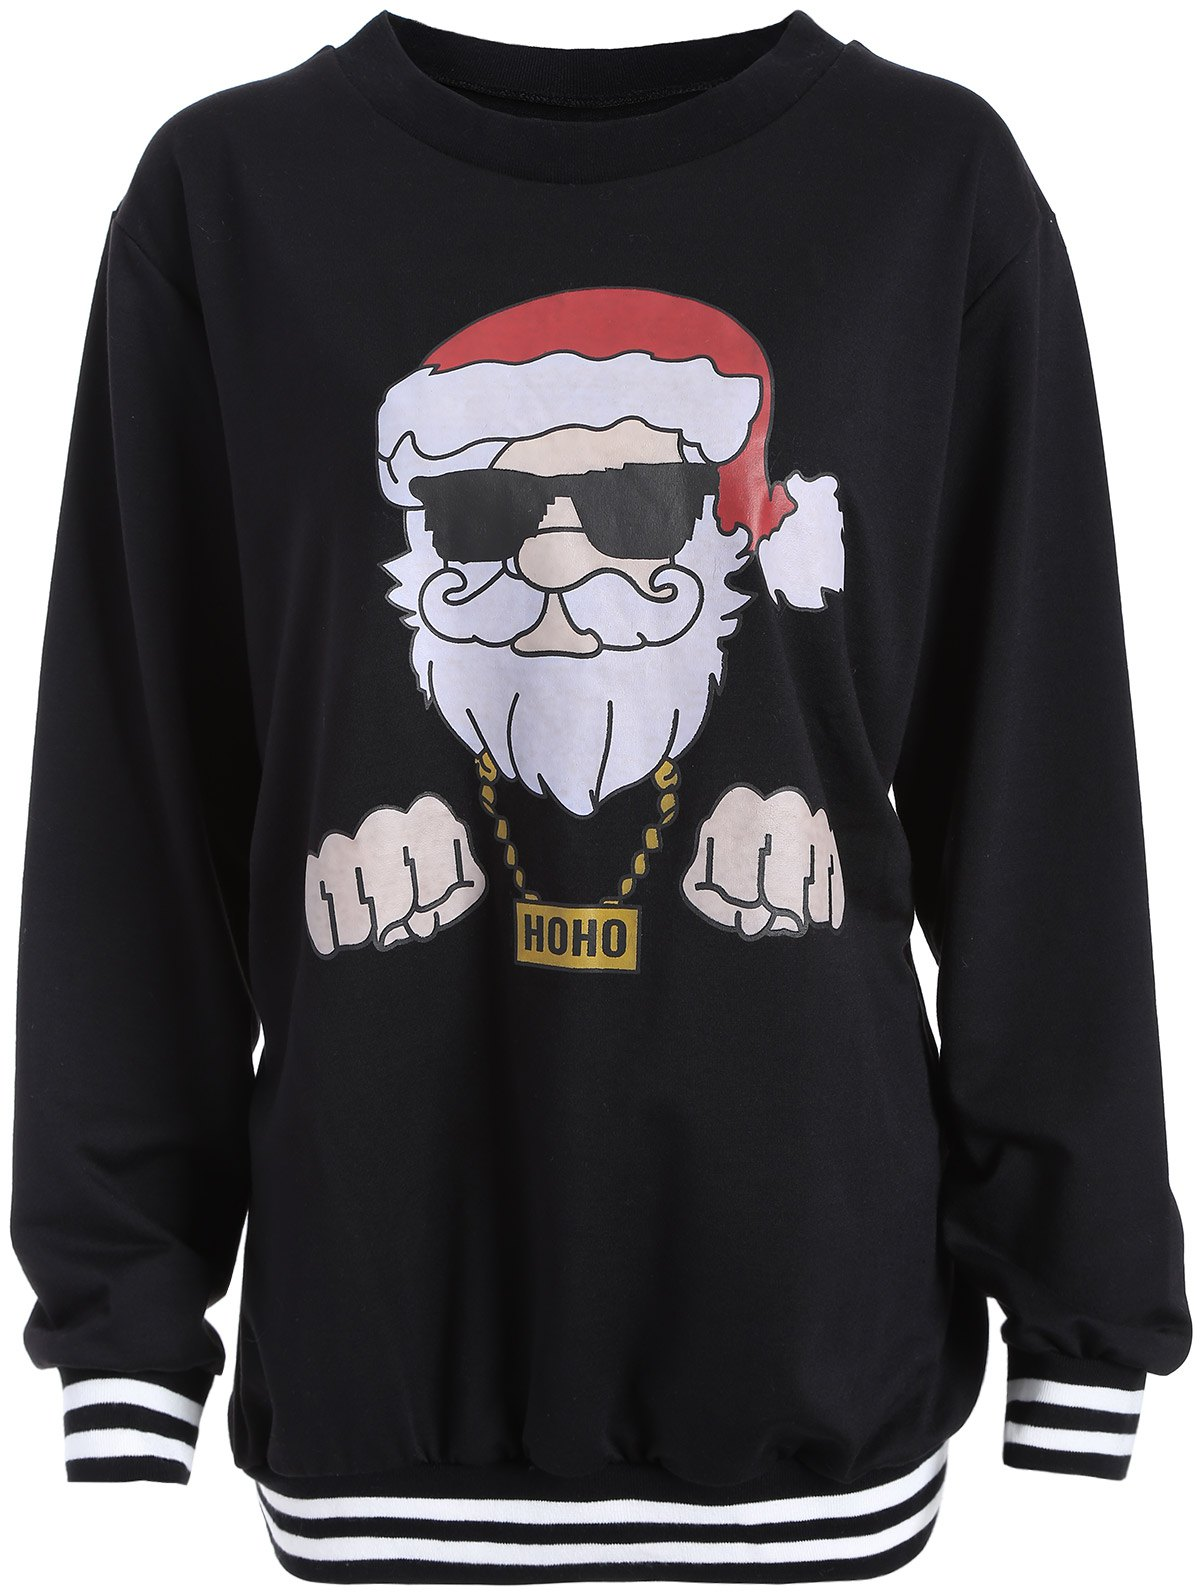 Christmas Santa Print Varsity Striped SweatshirtWOMEN<br><br>Size: 2XL; Color: BLACK; Material: Cotton,Polyester; Shirt Length: Long; Sleeve Length: Full; Style: Fashion; Pattern Style: Print; Season: Fall,Spring,Winter; Weight: 0.345kg; Package Contents: 1 x Sweatshirt;